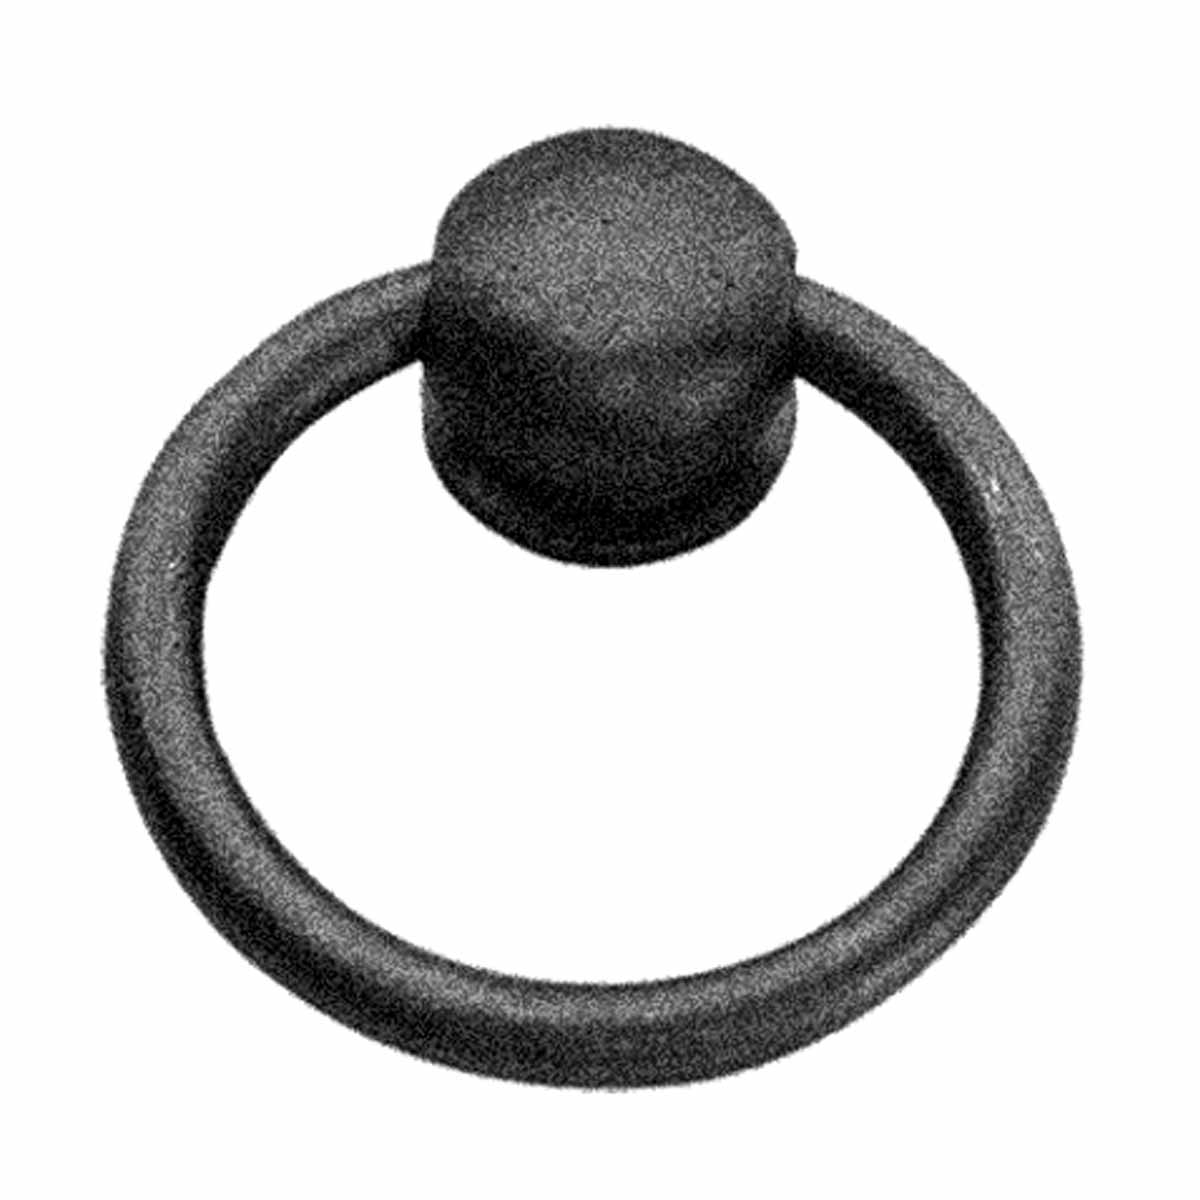 Ring Pull Black Wrought Iron Mission Cabinet Hardware Iron Ring Pull 2